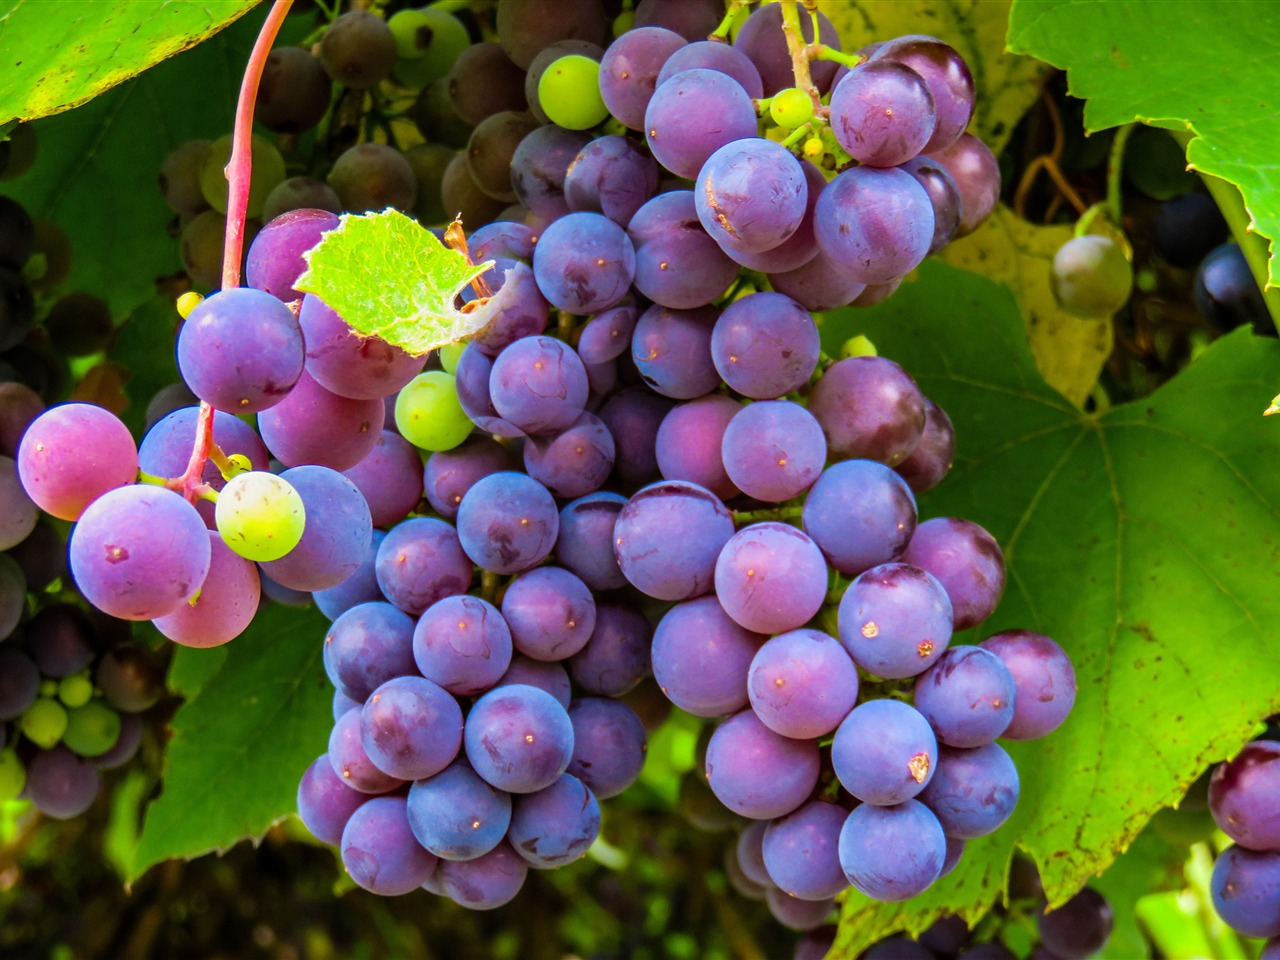 Fruit grape green plant closeup - 1280x960 wallpaper download